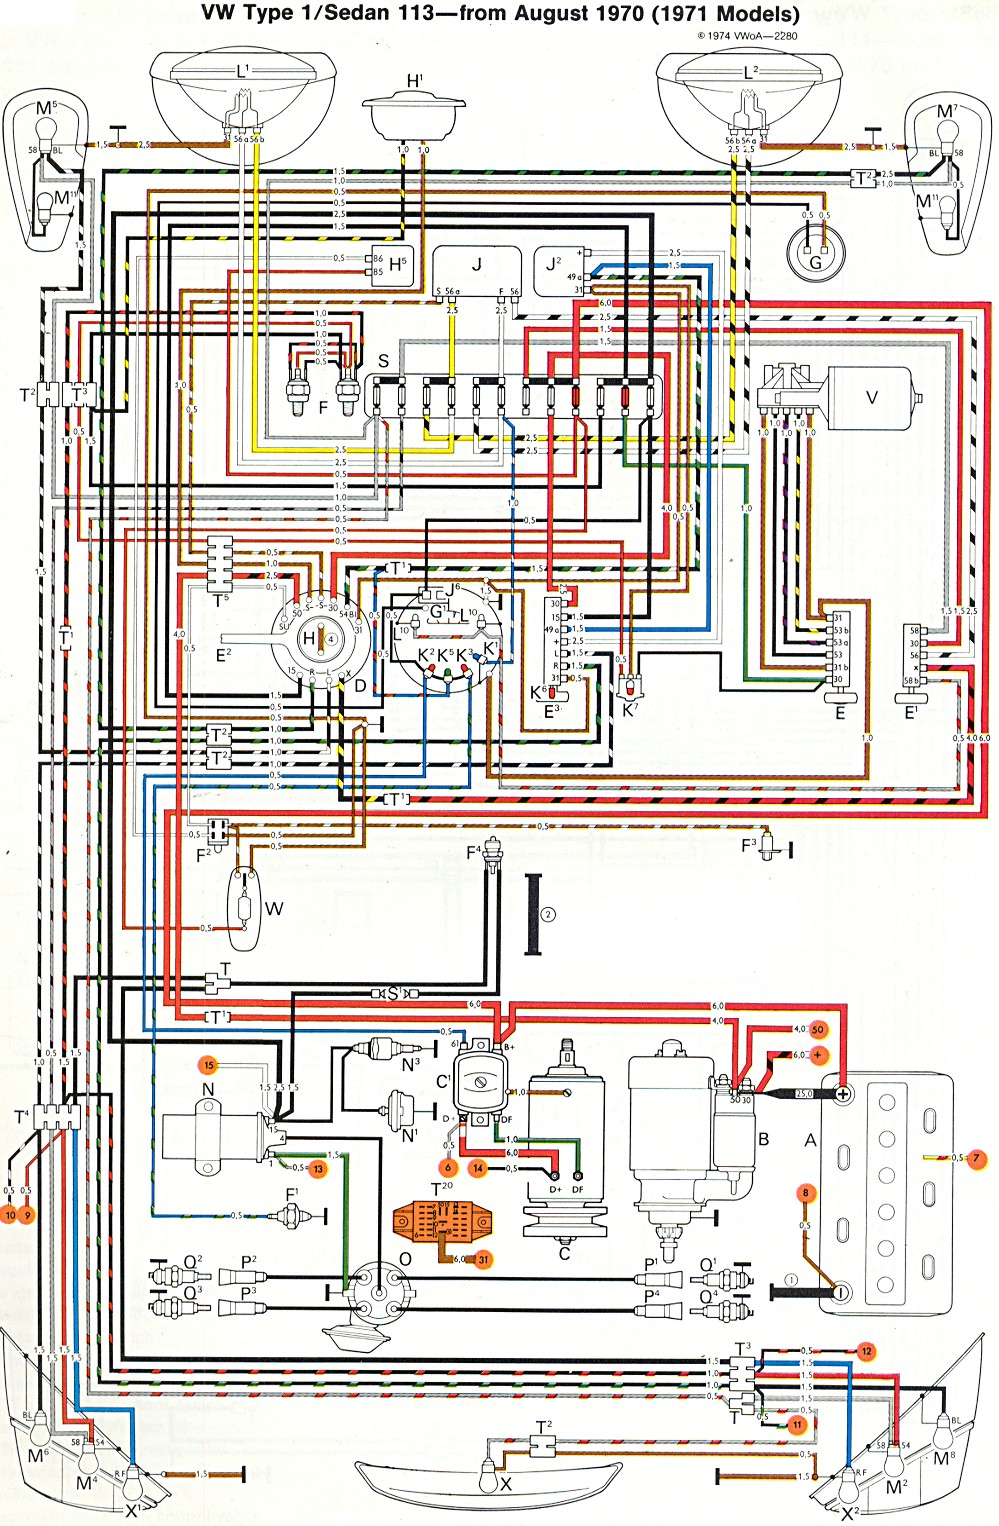 73 Vw Beetle Radio Wiring - seniorsclub.it schematic-sweep - schematic -sweep.seniorsclub.itschematic-sweep.seniorsclub.it